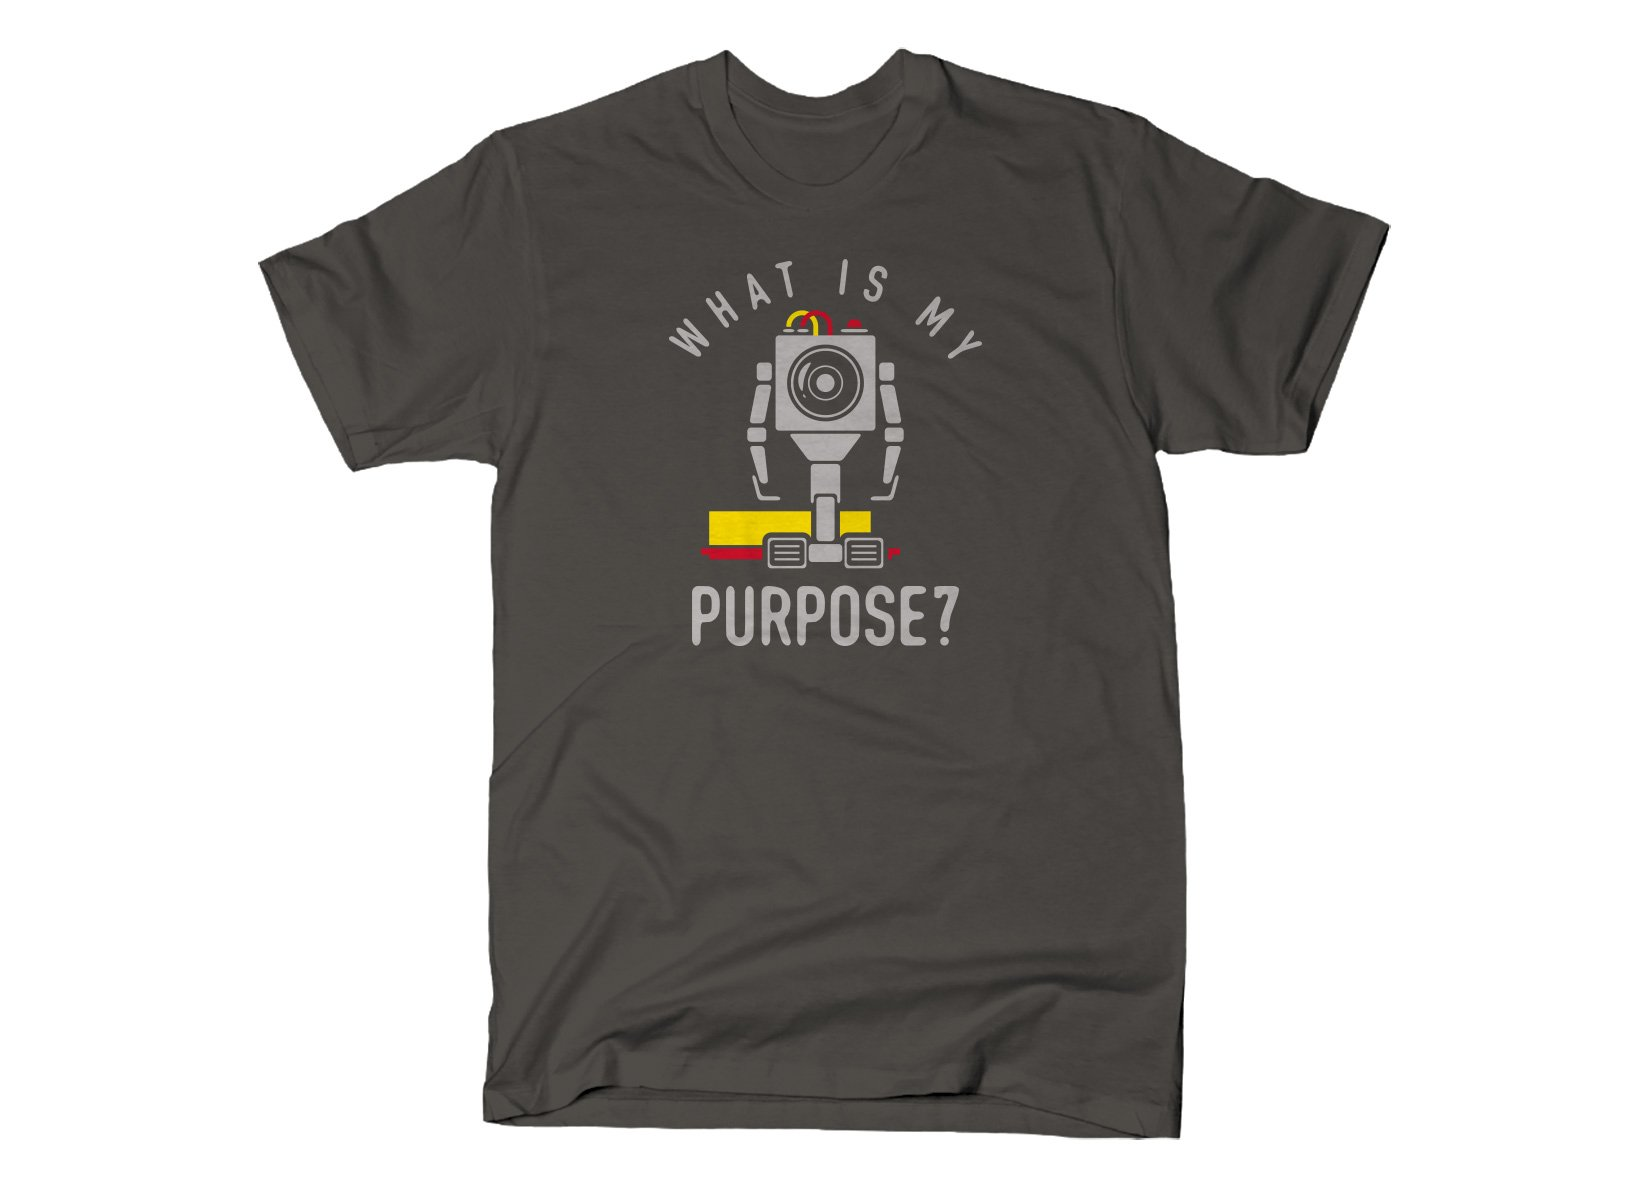 What Is My Purpose? on Mens T-Shirt